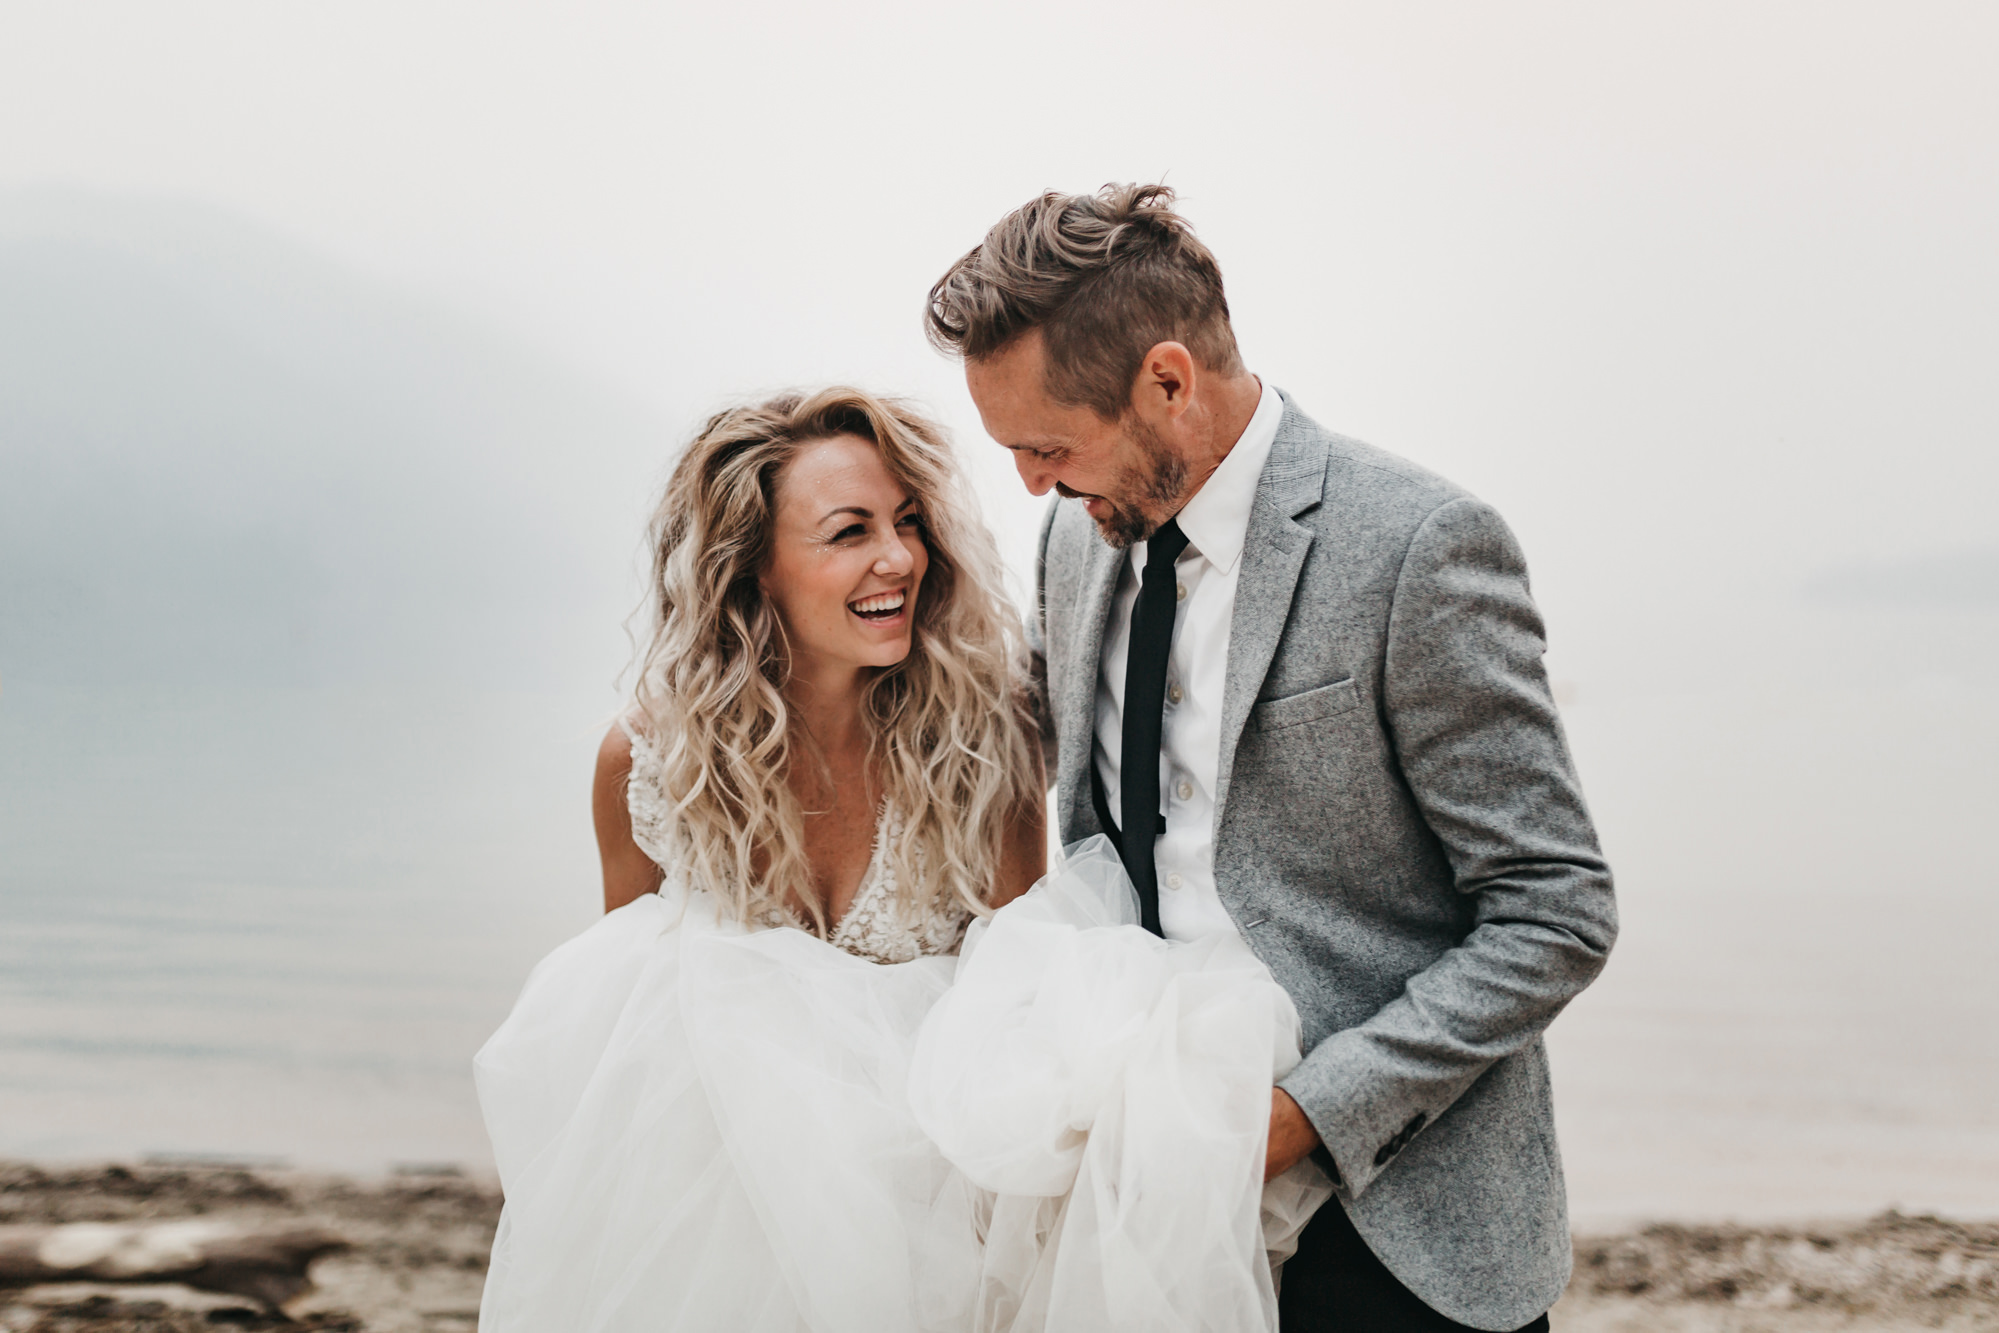 athena-and-camron-sara-truvelle-bridal-wenatchee-elopement-intimate-19-tulle-wedding-dress-smile.jpg